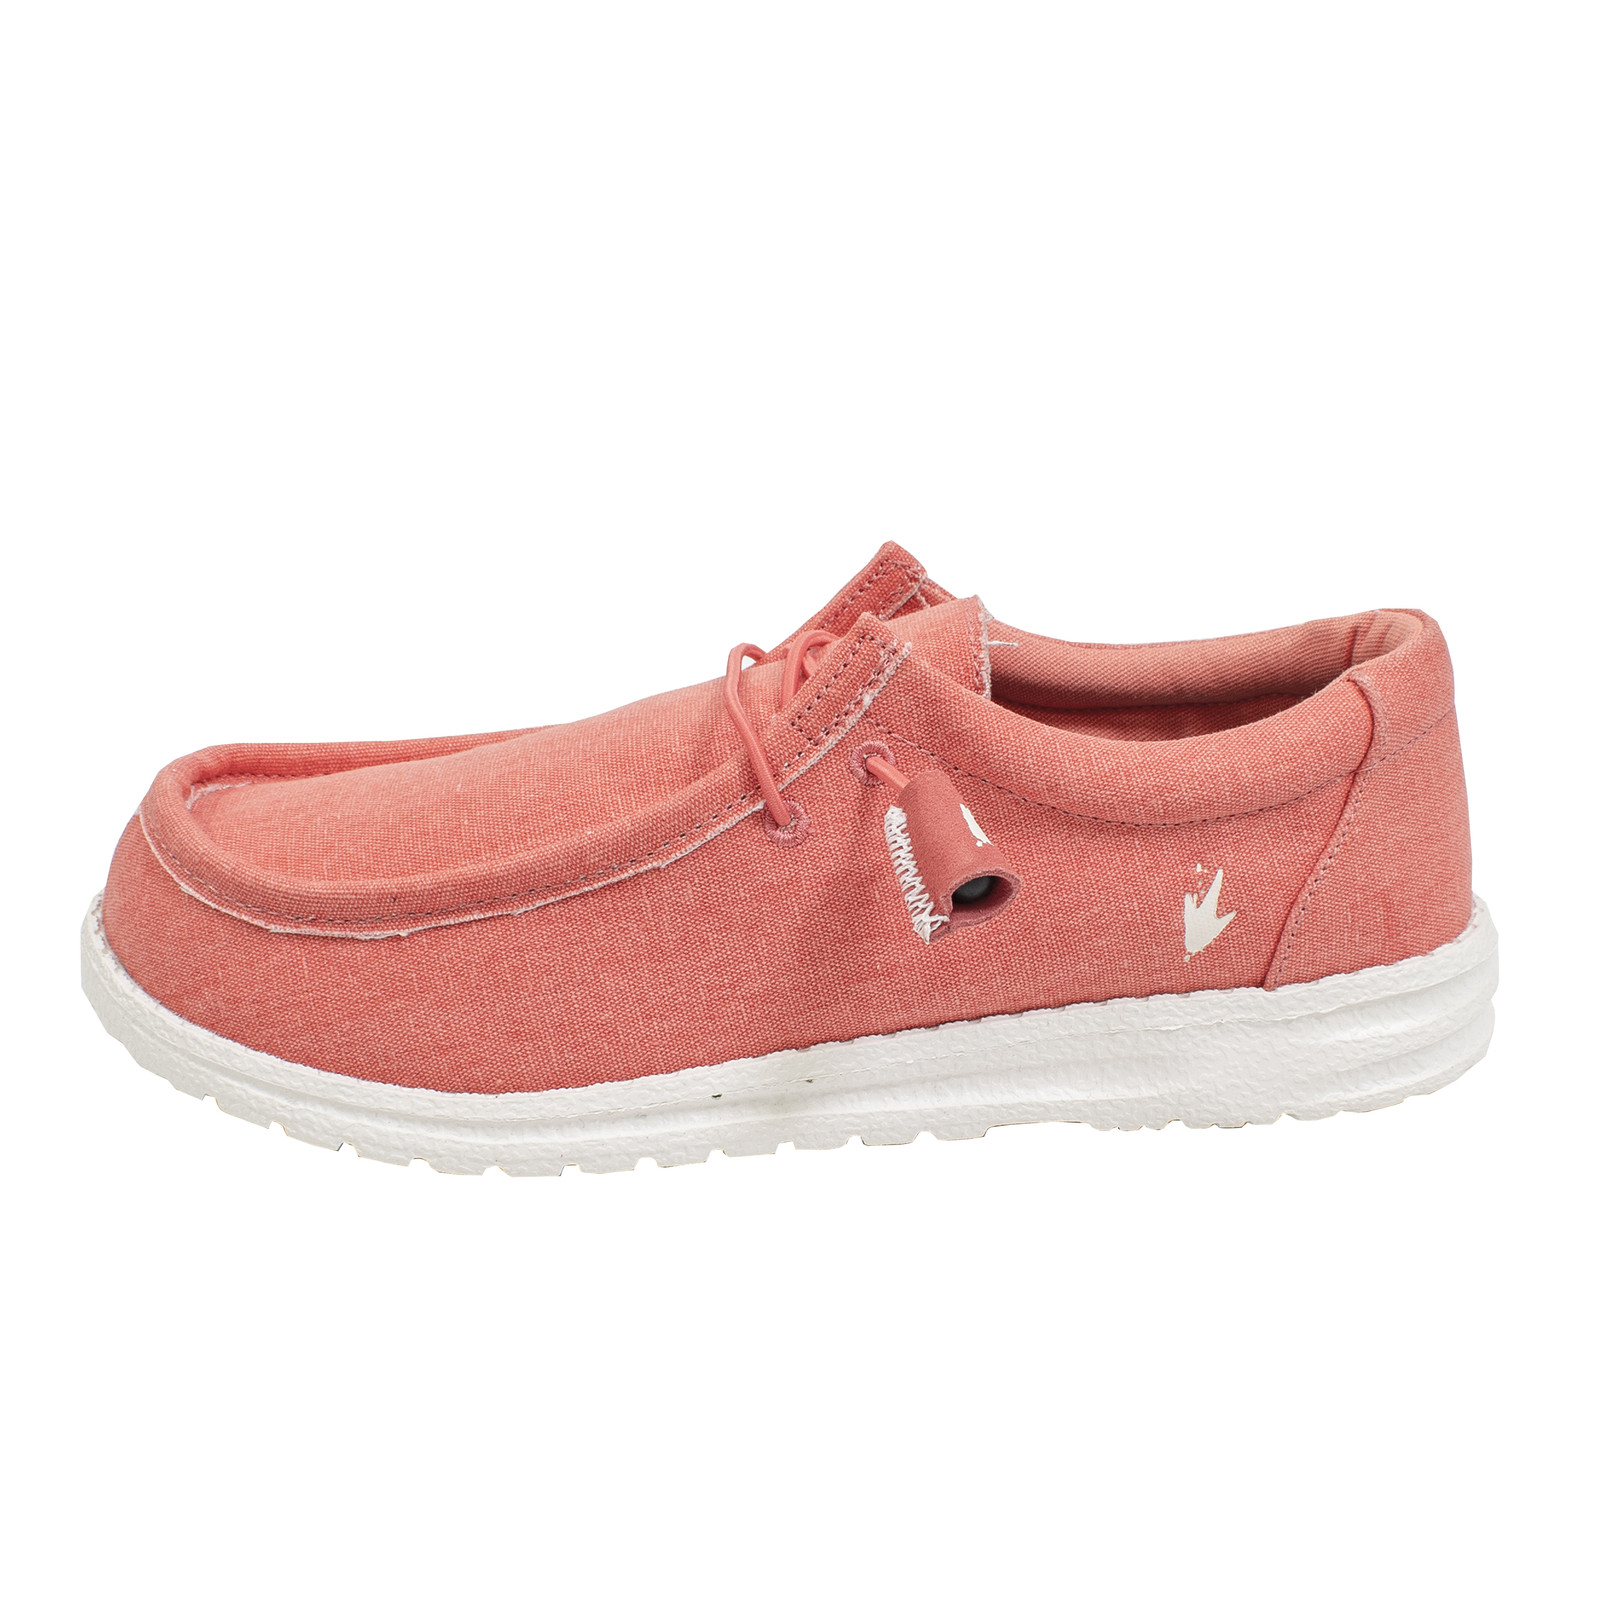 Women's Java Lace-Up Shoe Red-large